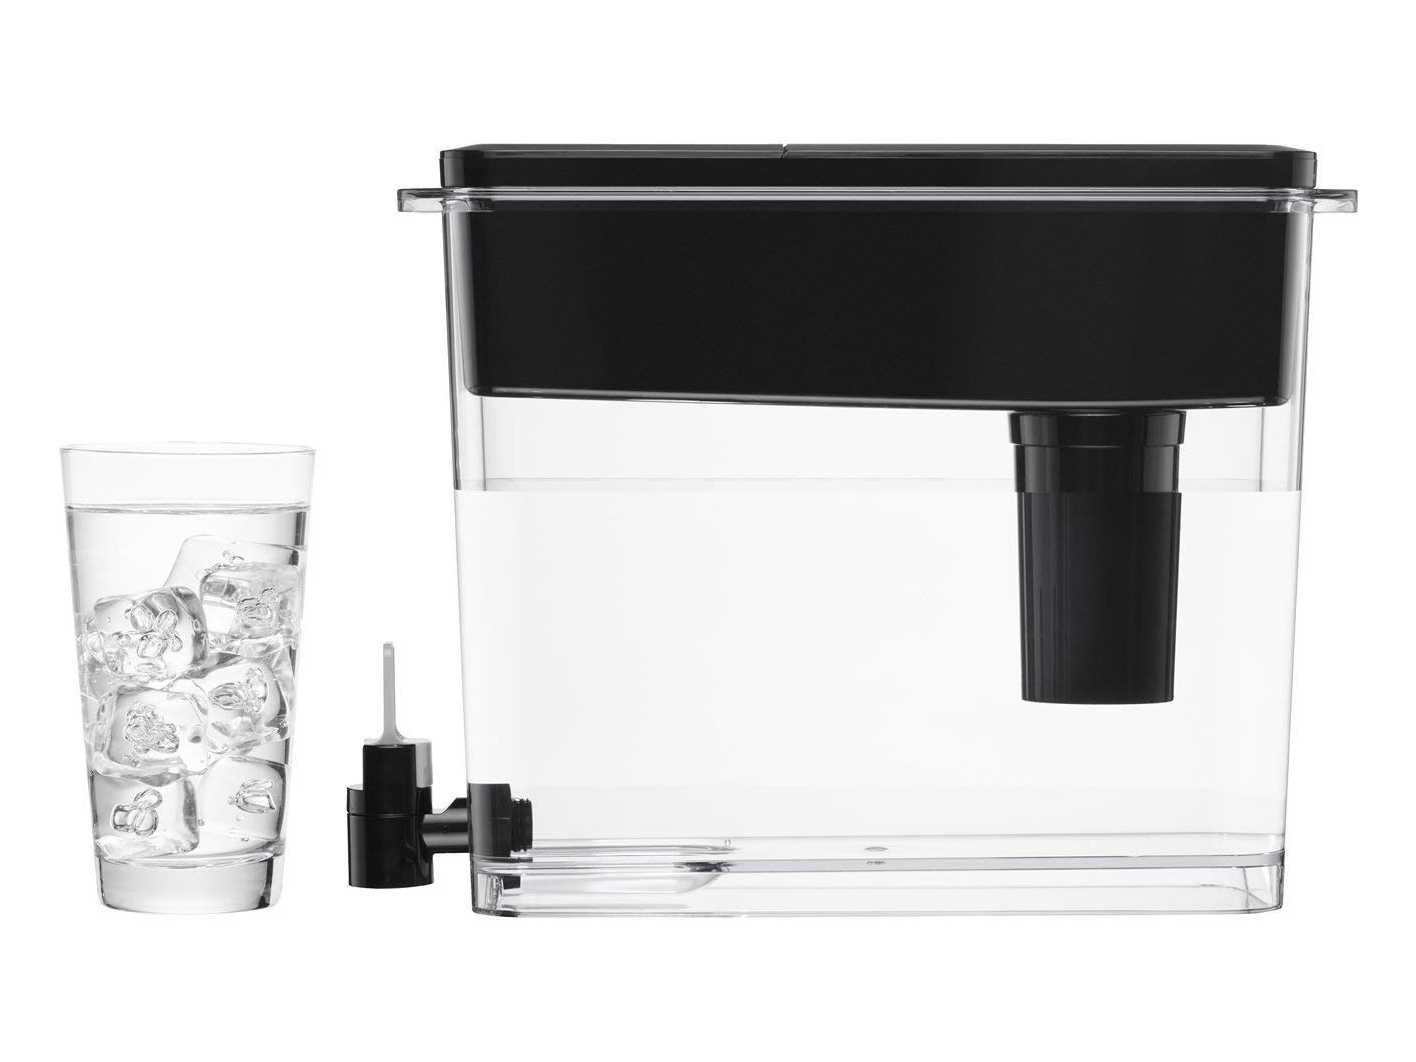 This Brita Filter Keeps Water Clean for 6 Months — And It's on Sale Right Now